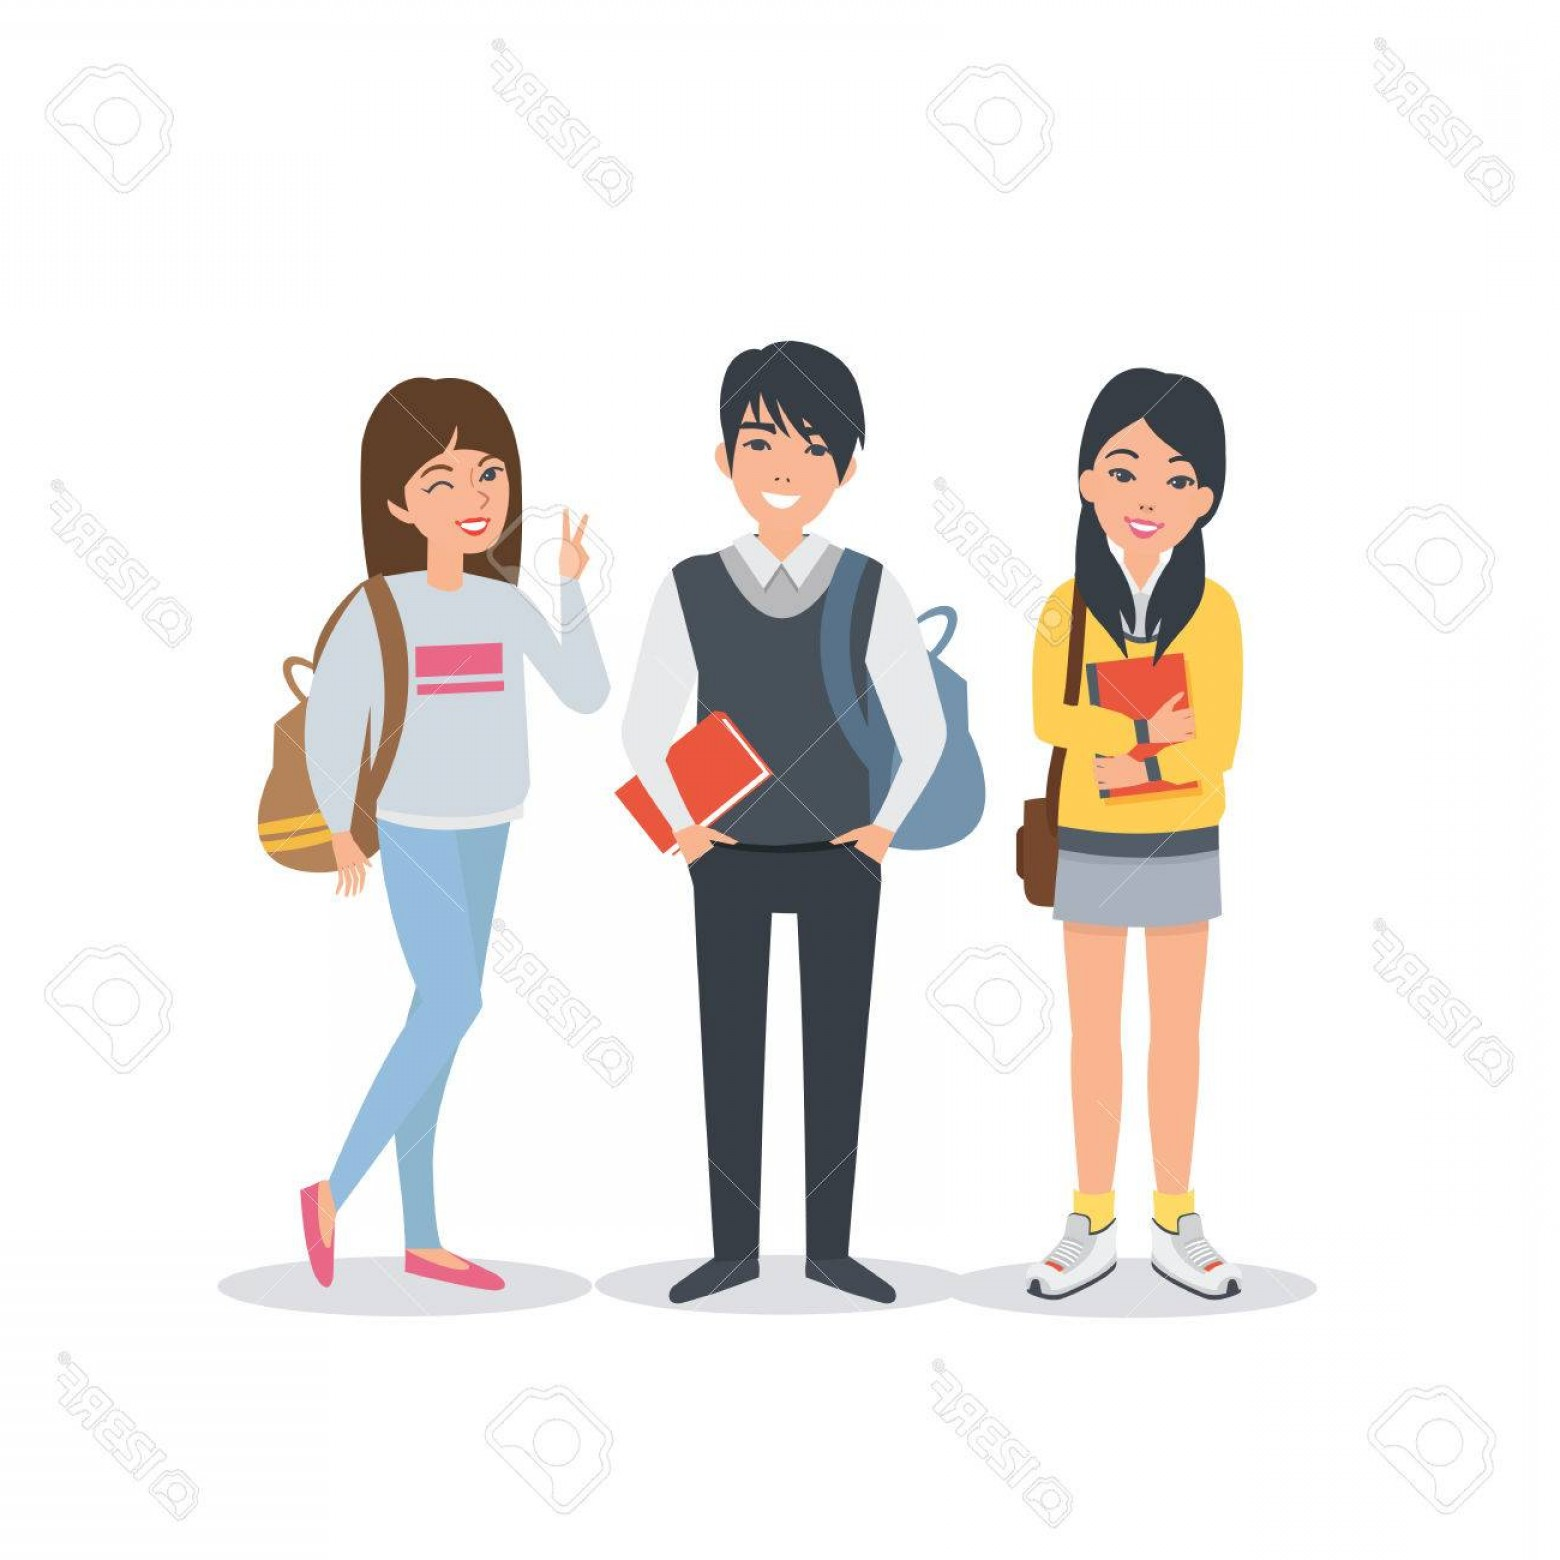 Asian Student Vector: Photostock Vector Young Asian Student Characters Collection Students Lifestyle Vector Students Illustration